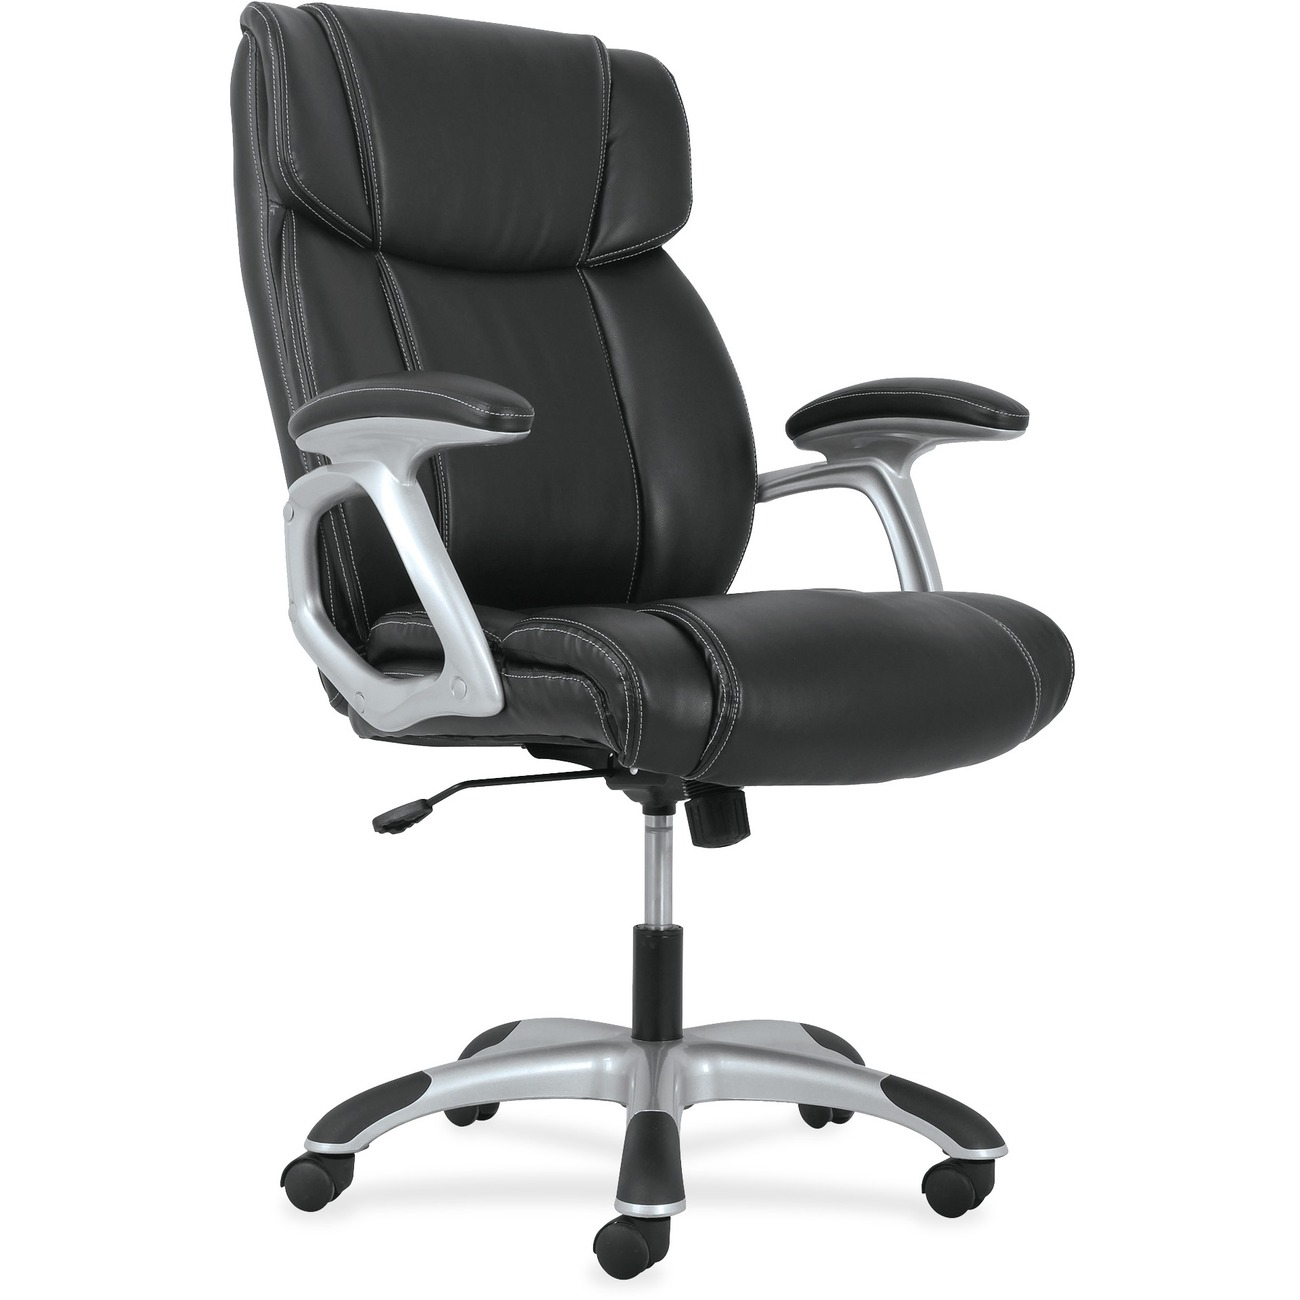 executive chair accessories black king throne west coast office supplies furniture chairs